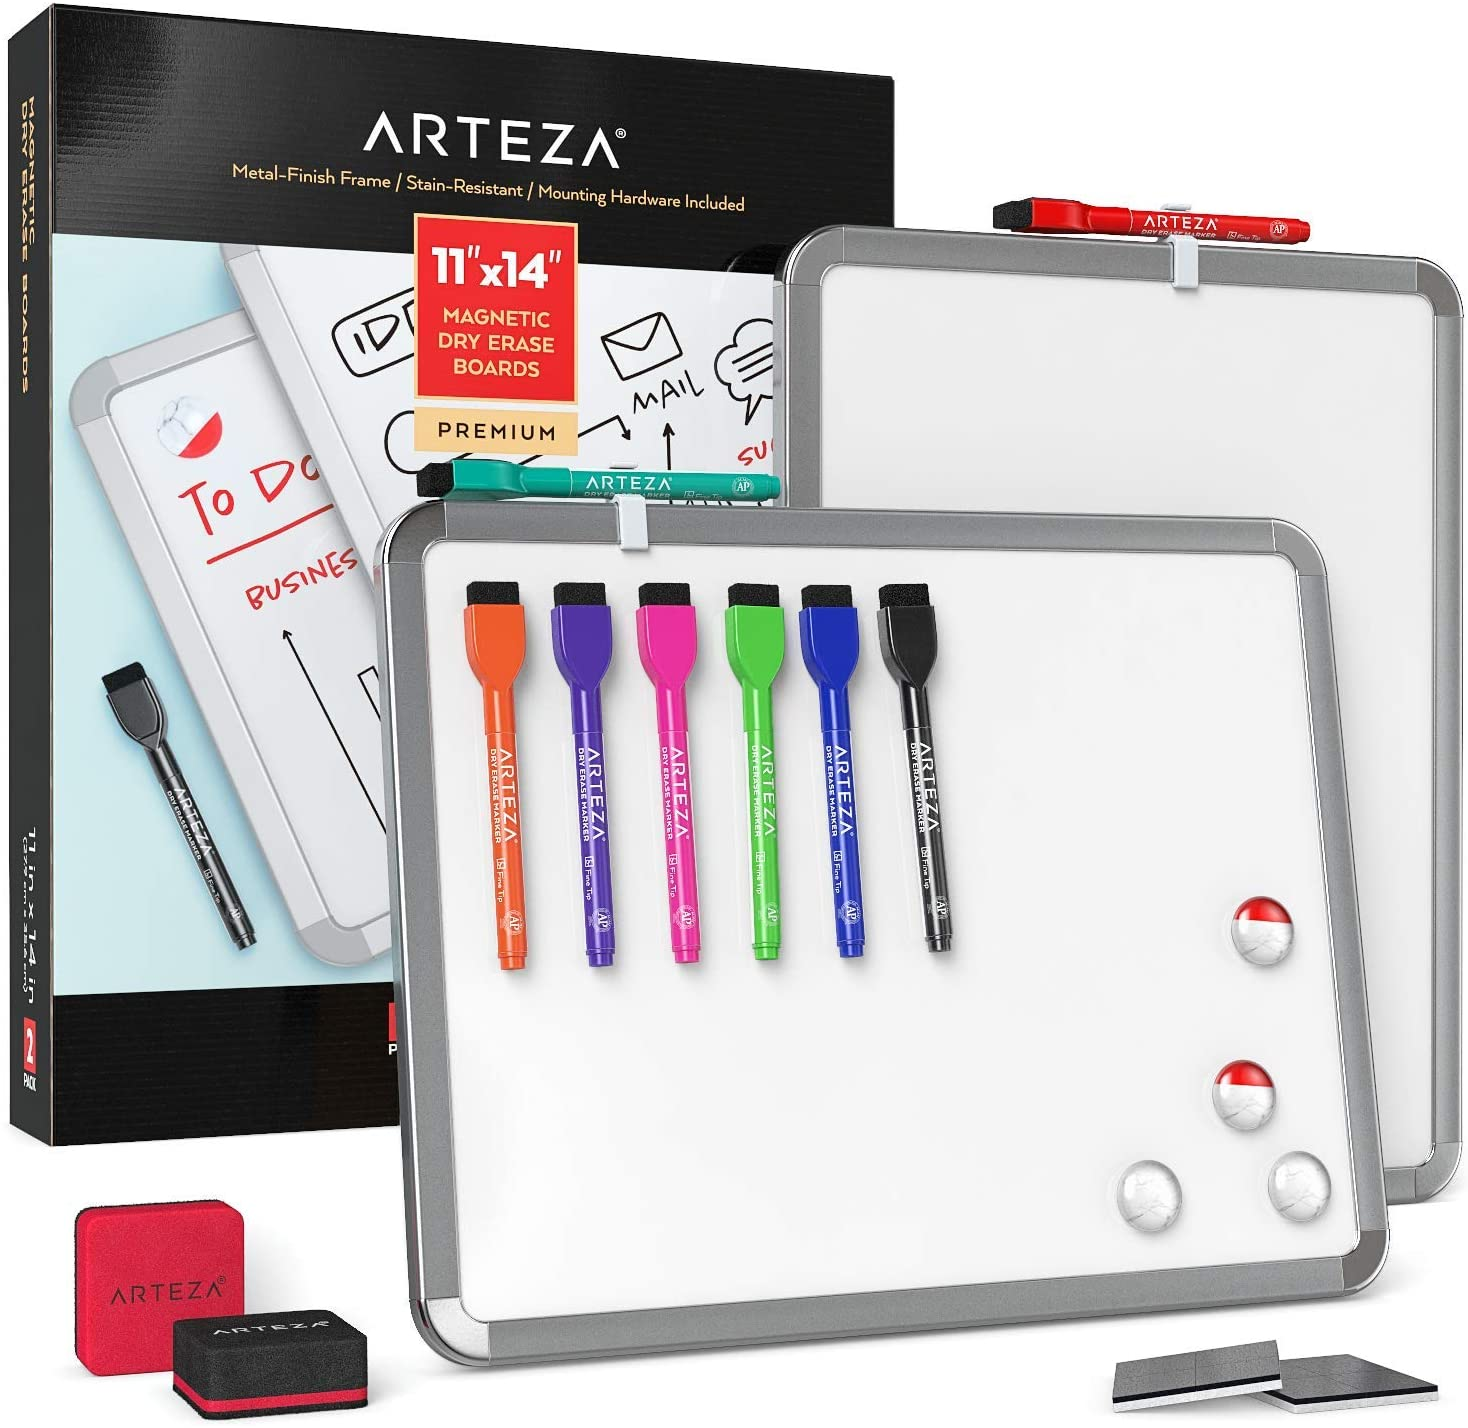 Arteza Framed Magnetic Whiteboard Set, 11x14 inches, 2-Pack Dry Erase Lap Boards with Markers & Magnets for School, Home, Office, Planning, Brainstorming, Projects